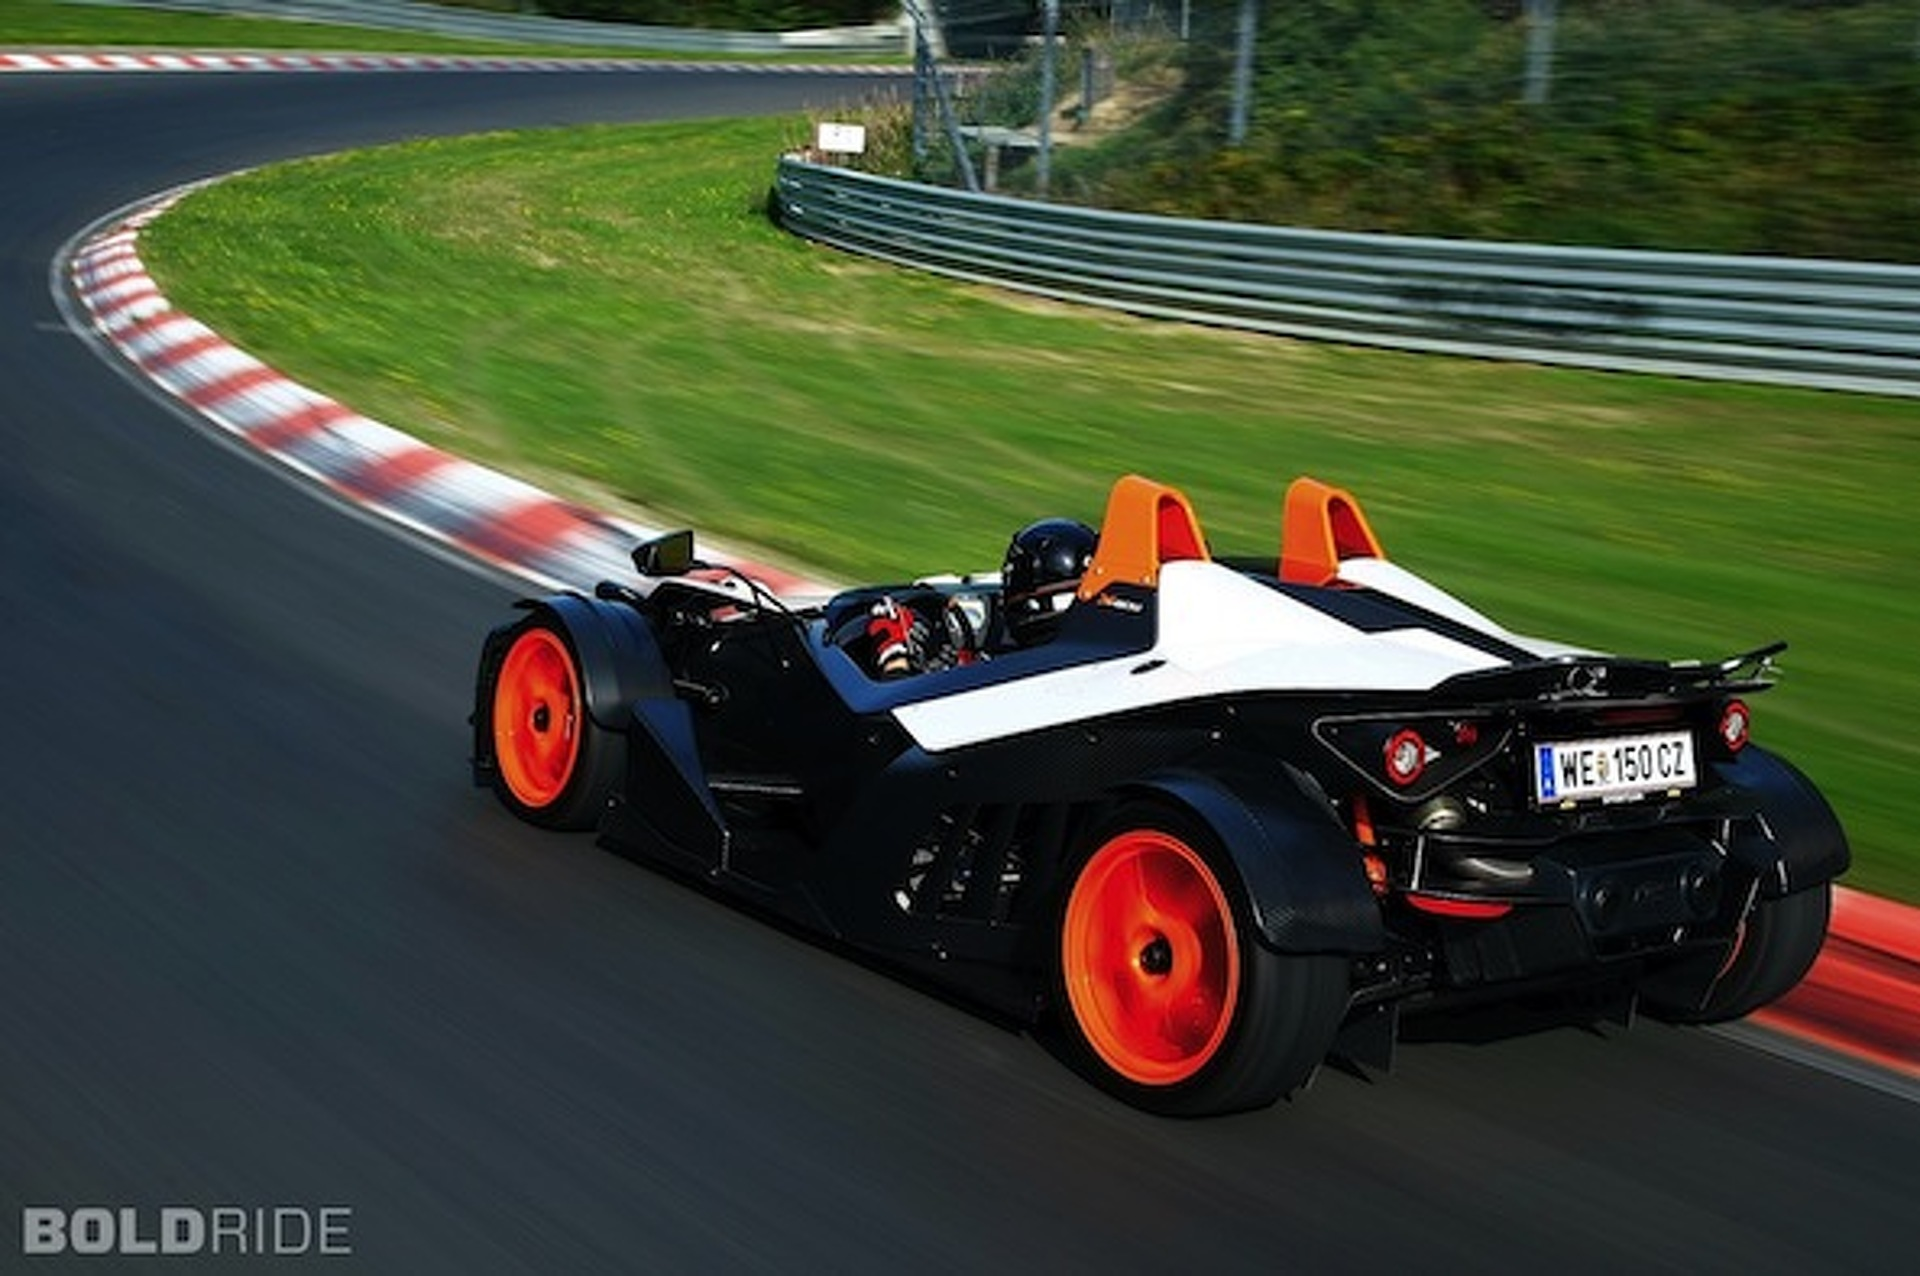 KTM X-Bow GT: More Windows, More Doors, More Good?